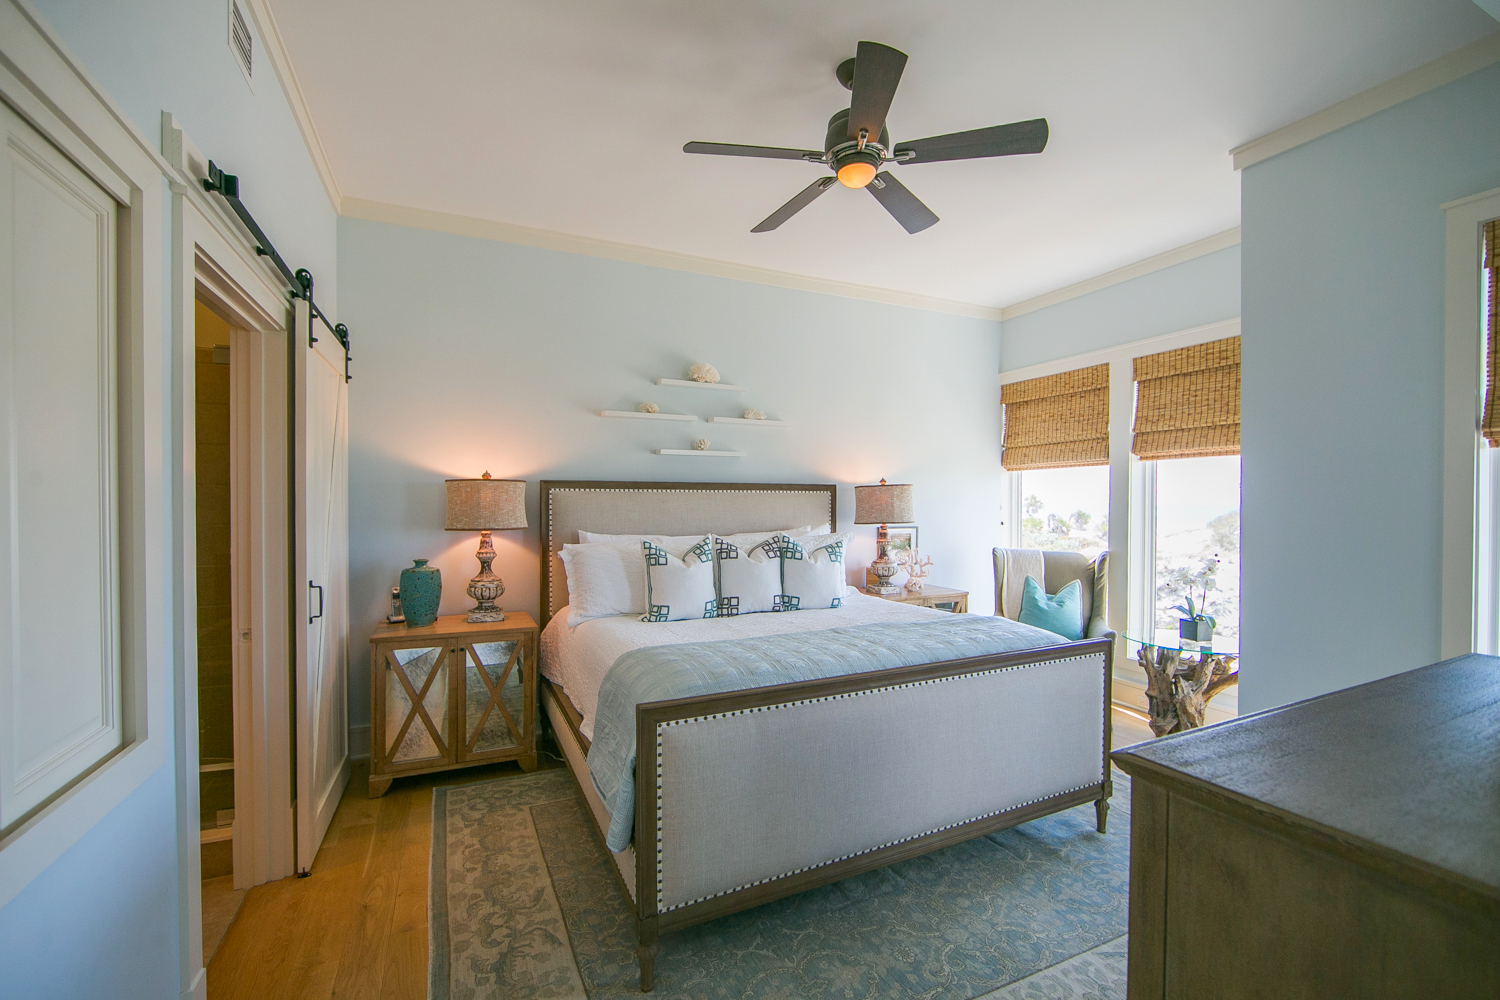 Master bedroom has a King bed and features gulf views